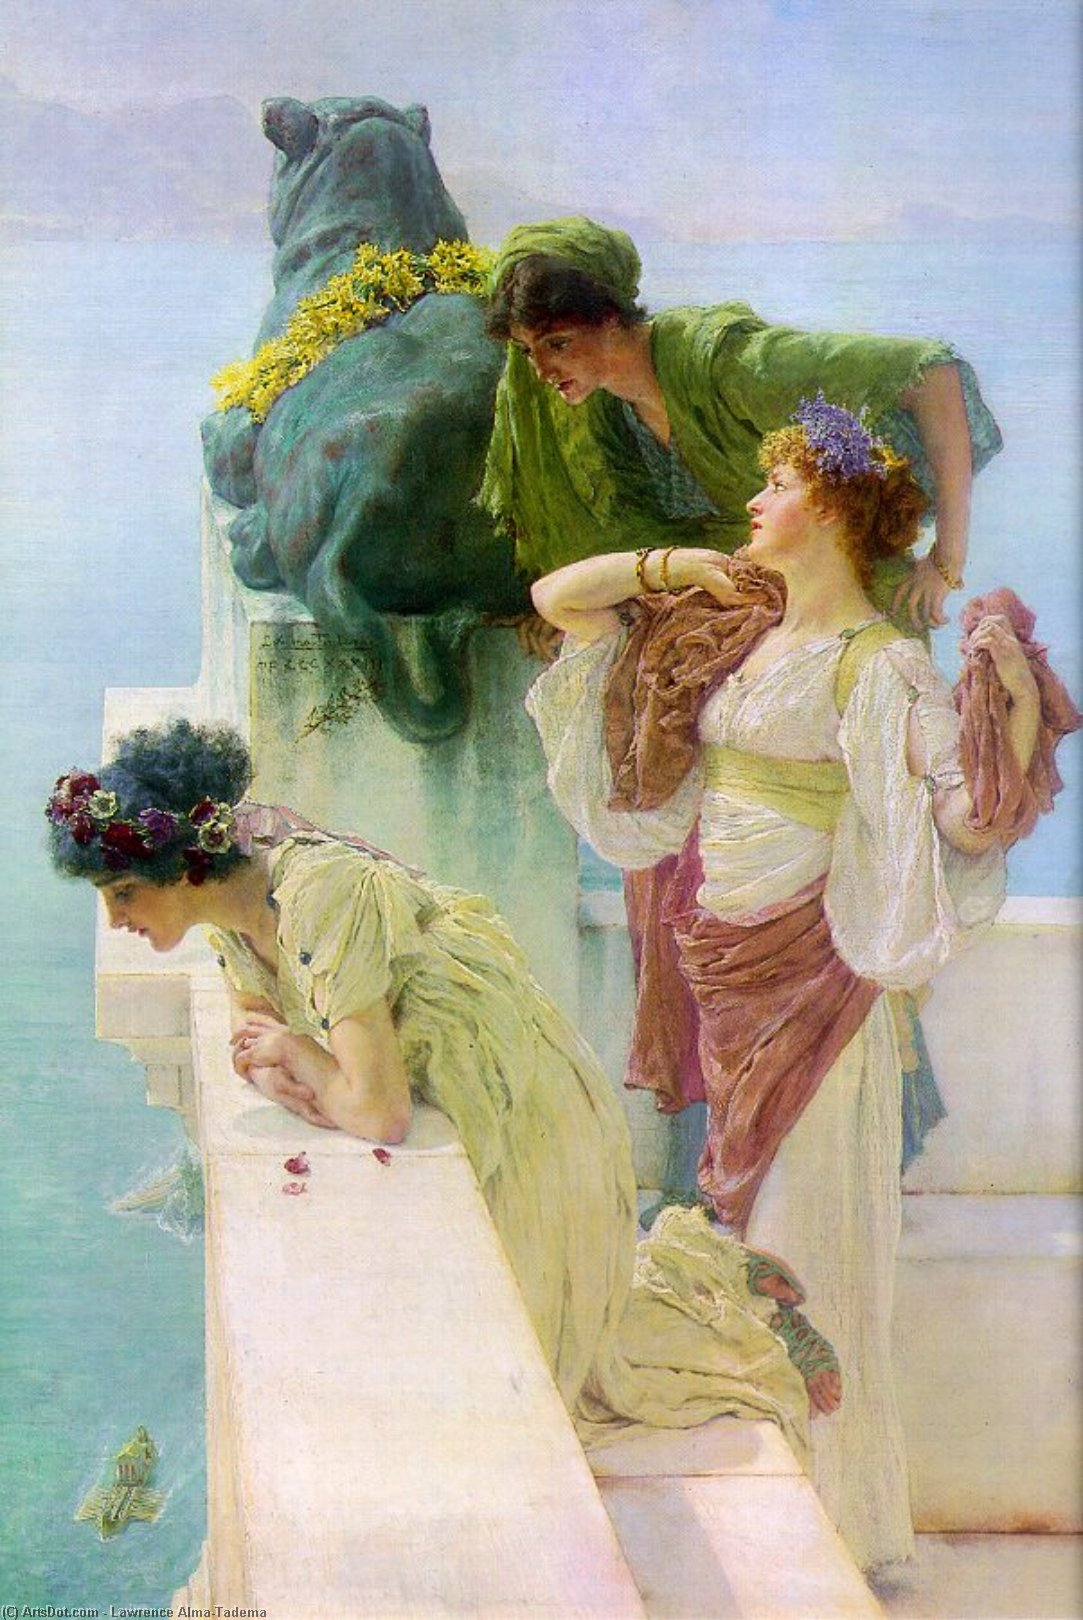 Wikioo.org - The Encyclopedia of Fine Arts - Painting, Artwork by Lawrence Alma-Tadema - A Coign of Vantage